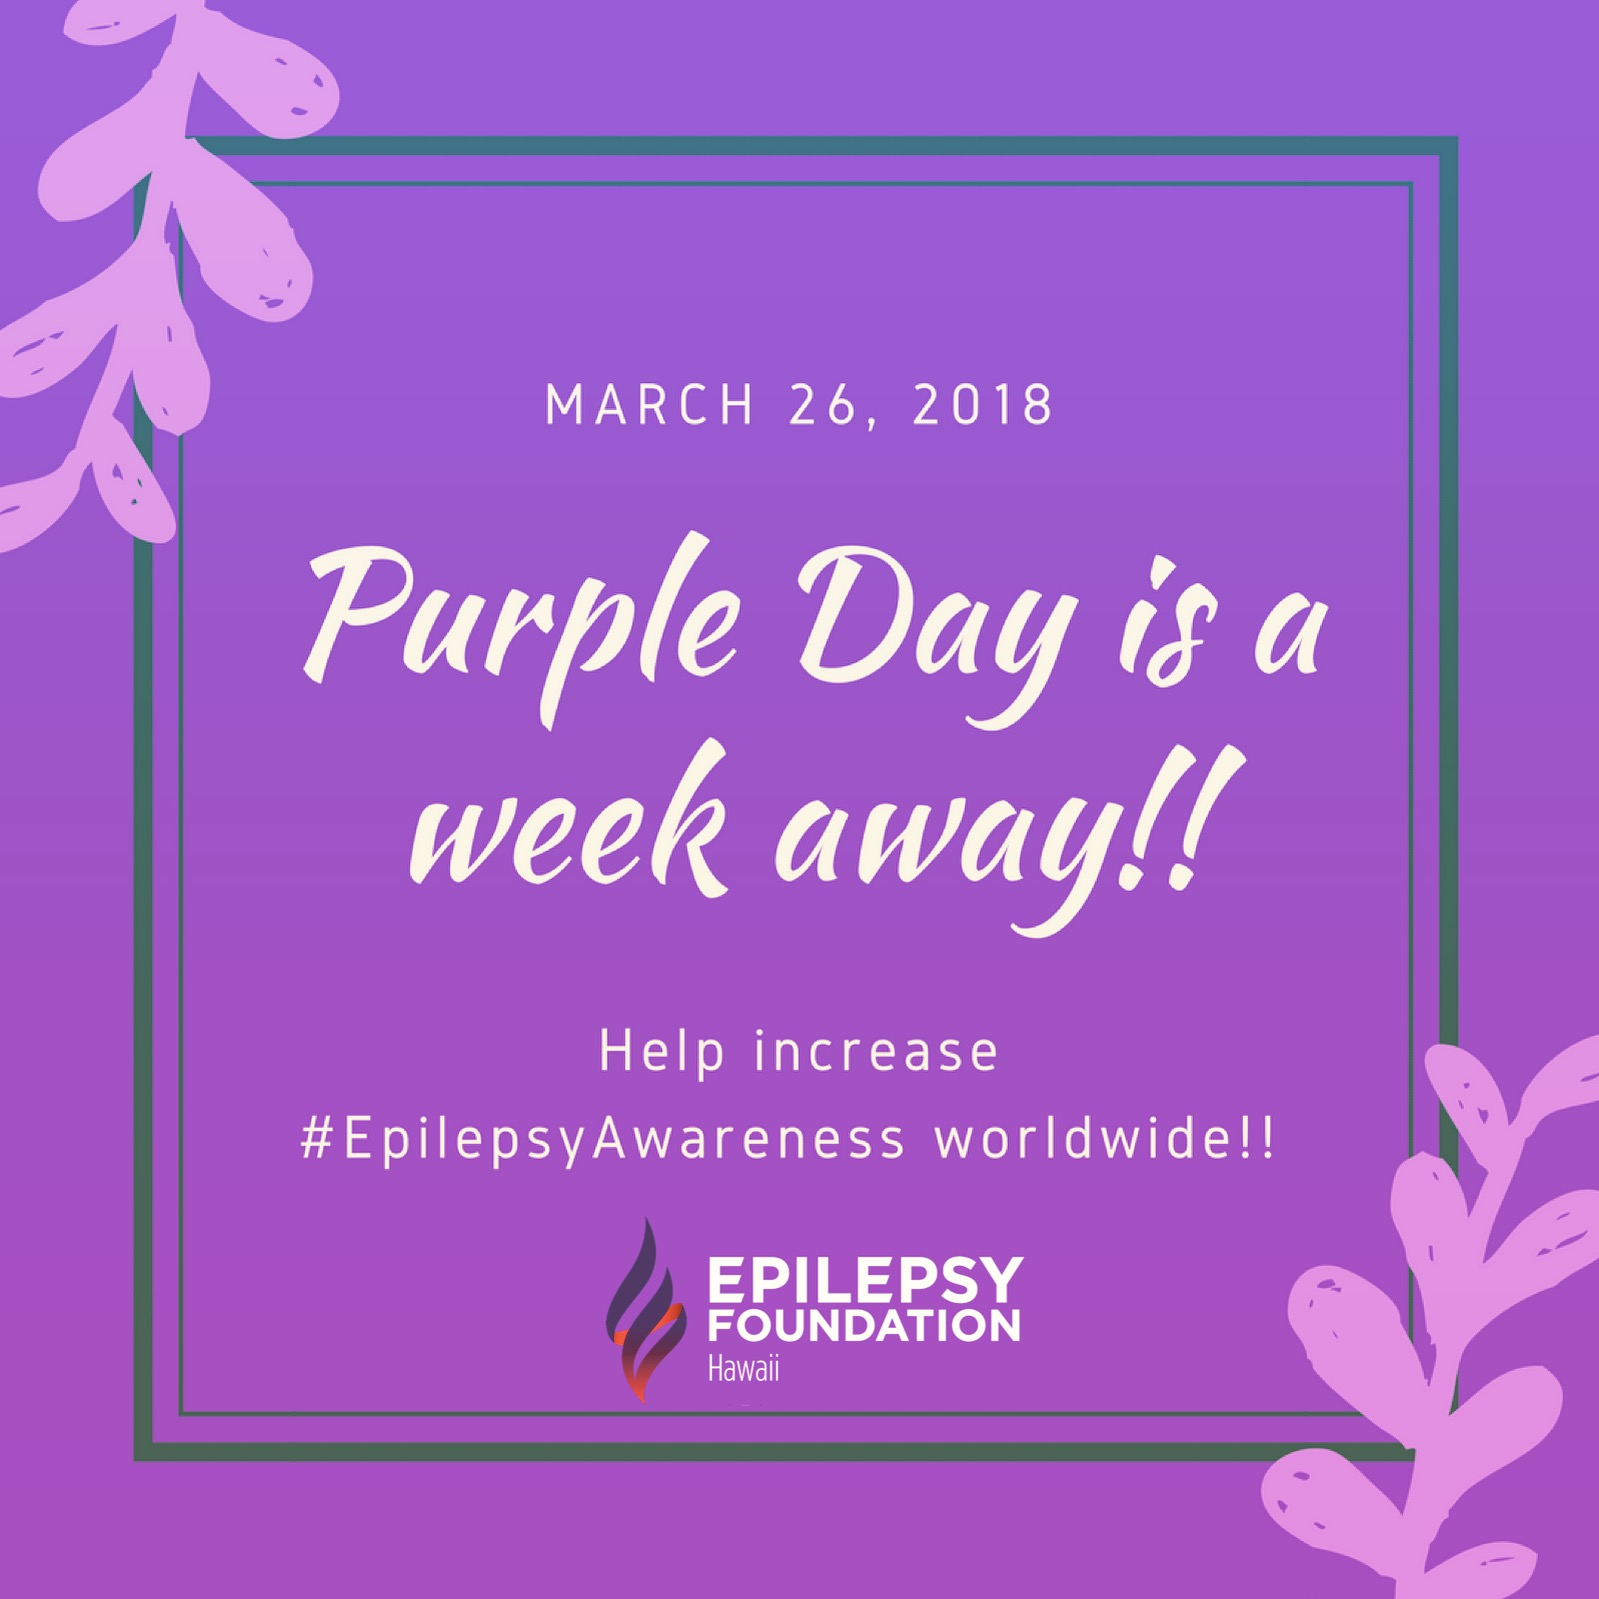 Purple Day - March 26, 2018